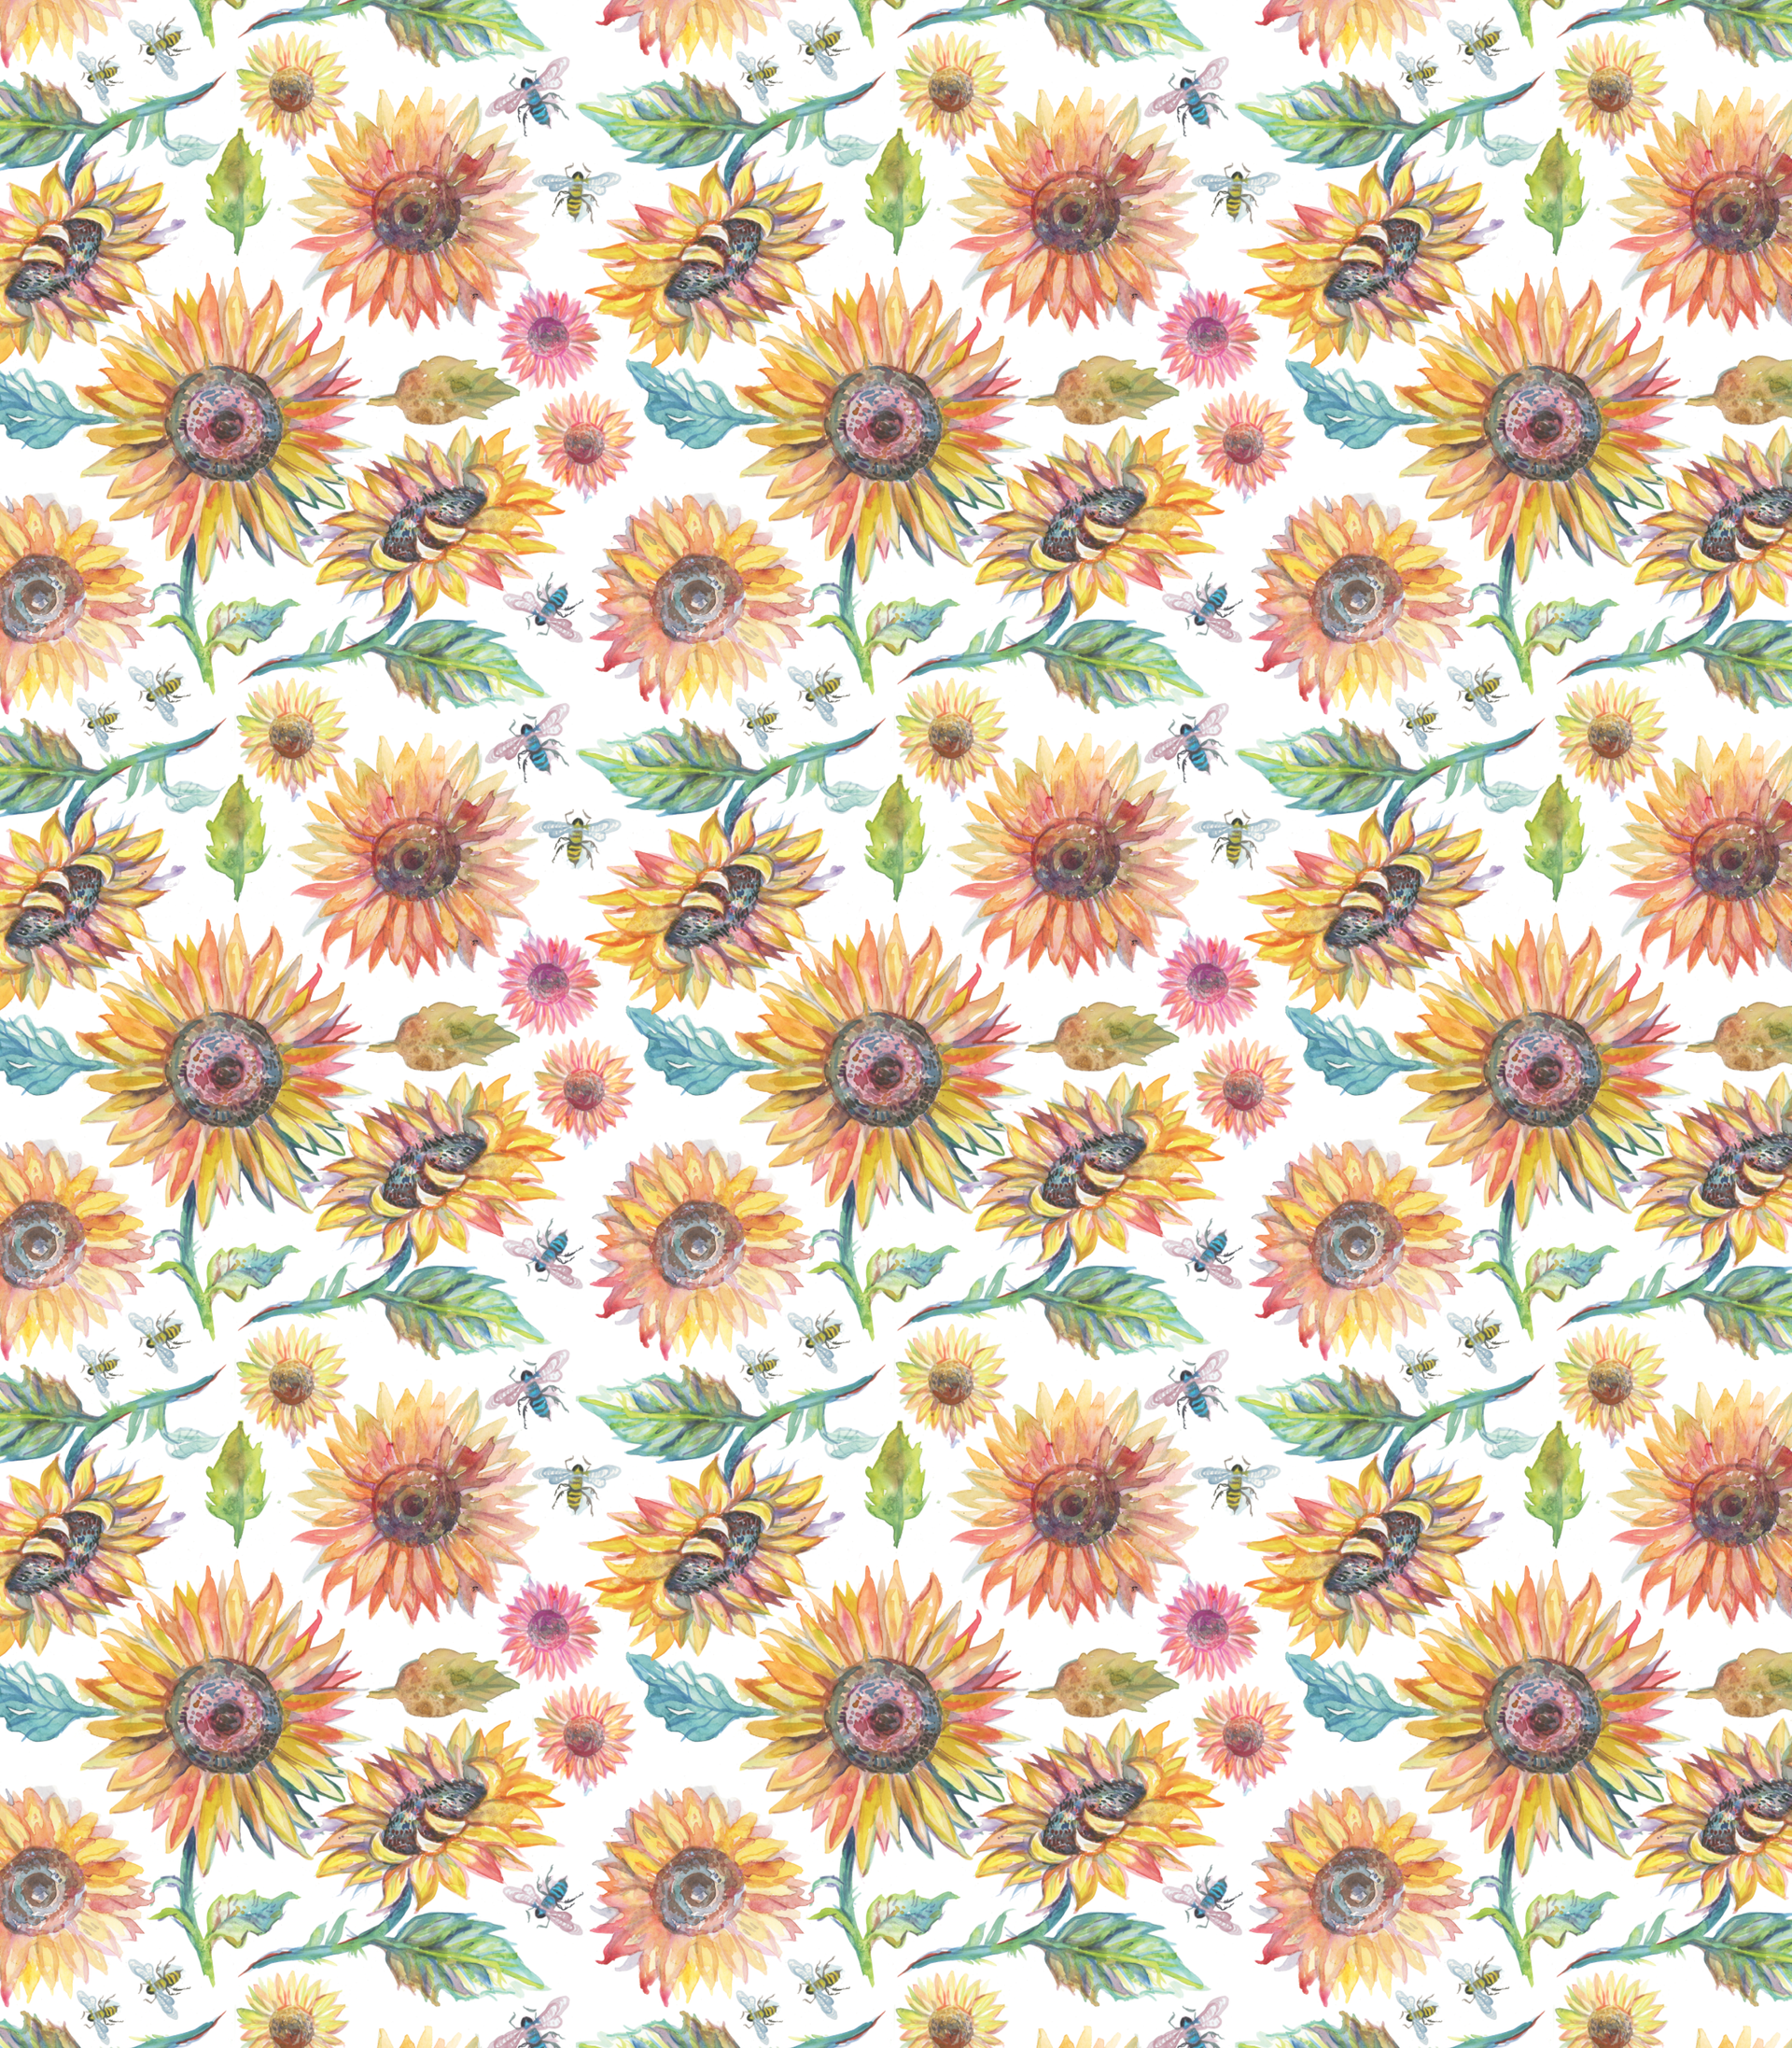 Sunflower-pattern-.png